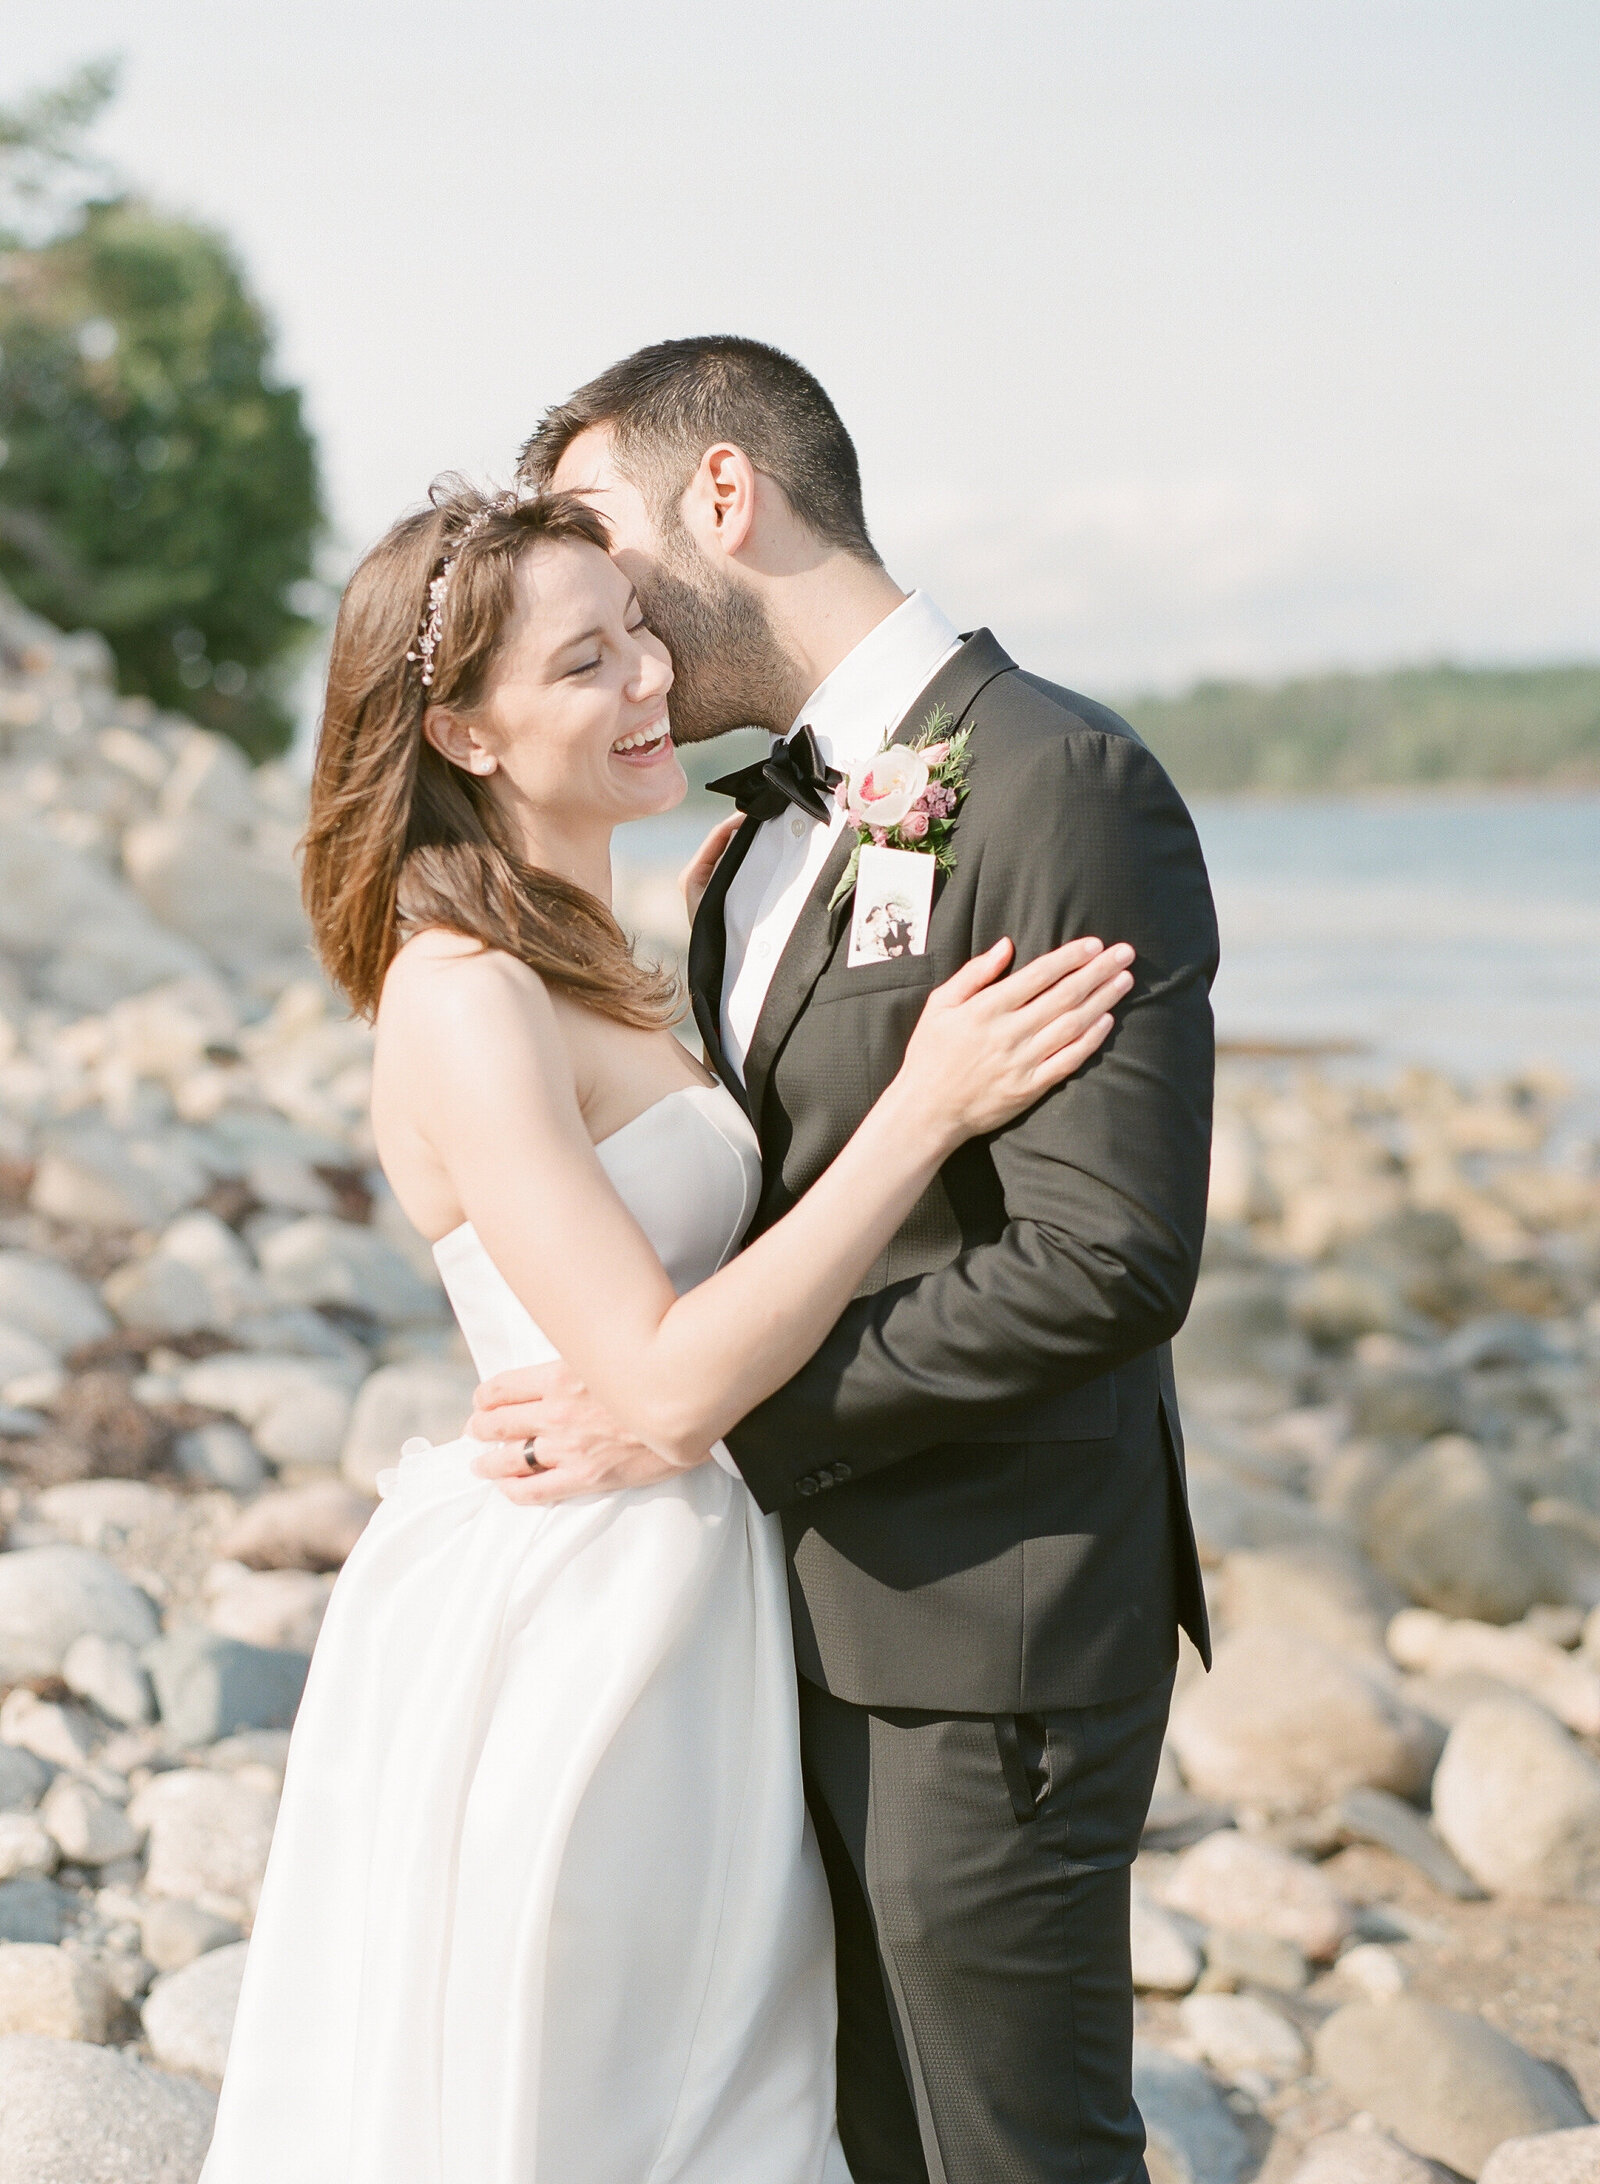 Jacqueline Anne Photography - Halifax Wedding Photographer - Jessica and Mehmet East Coast Wedding-238